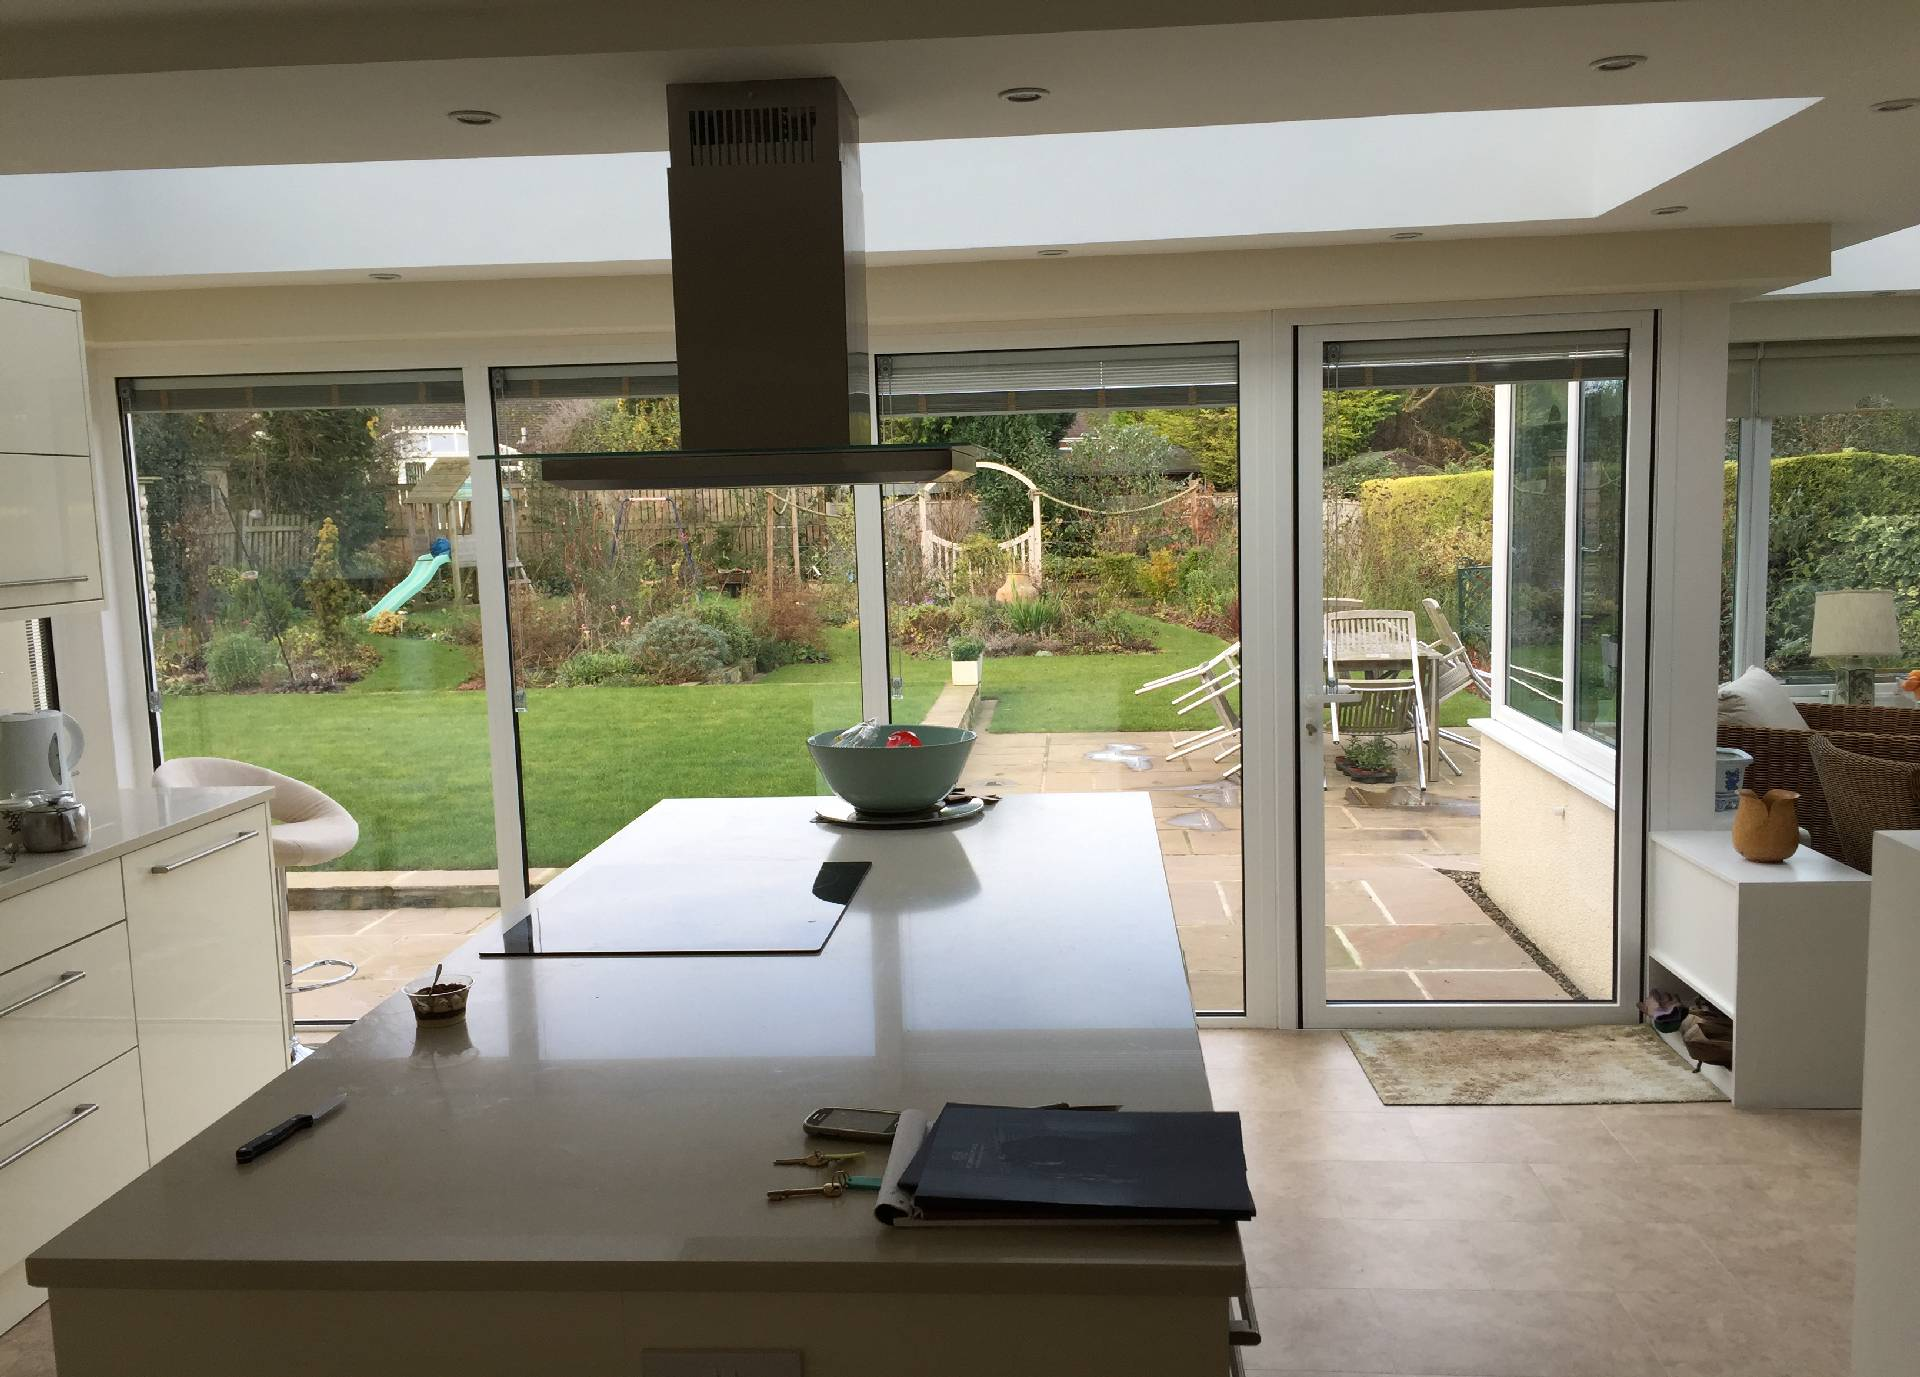 Kitchen Extension in Orangery - internal view 1